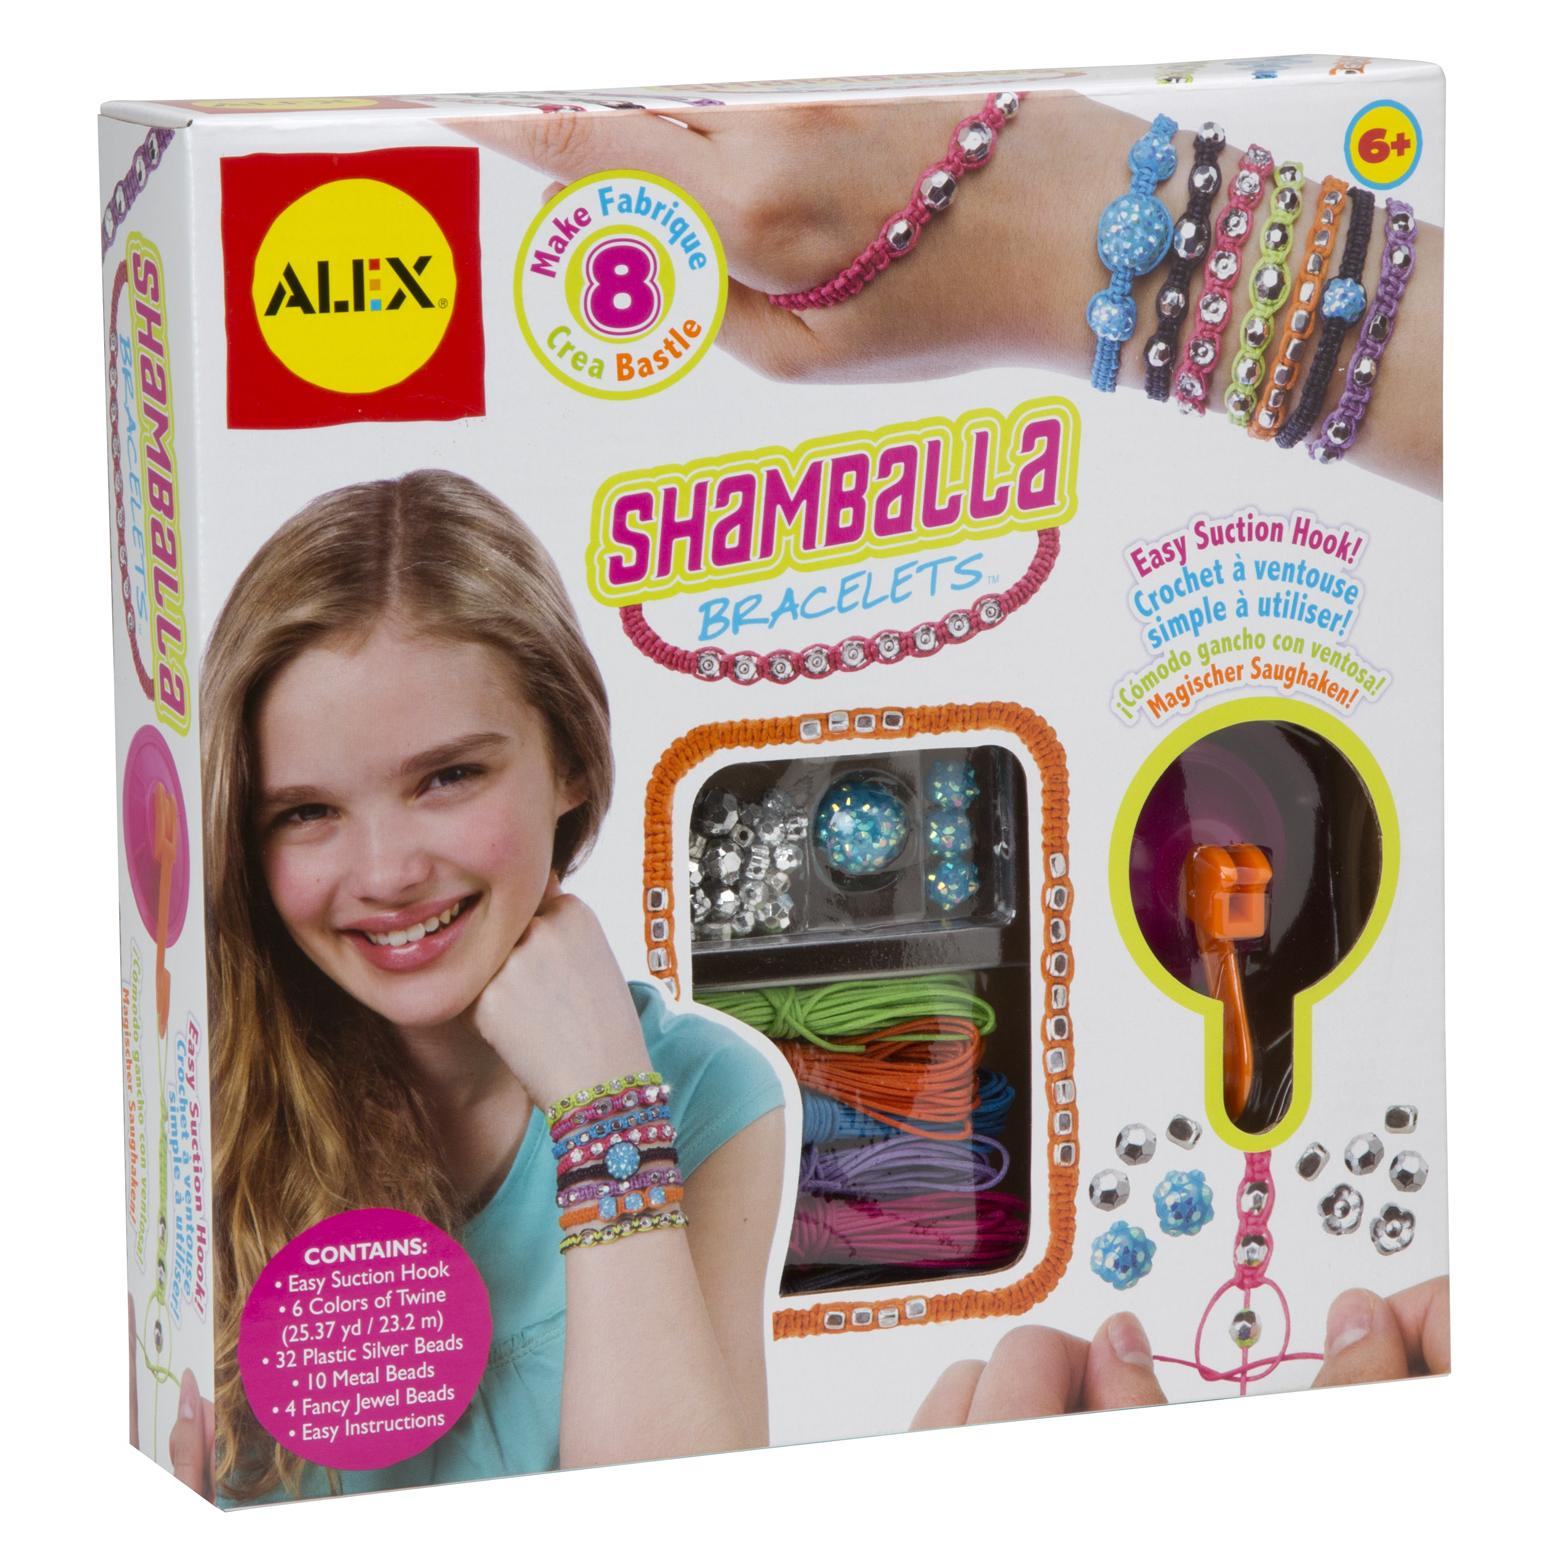 ALEX DIY Shamballa Jewelry Kit